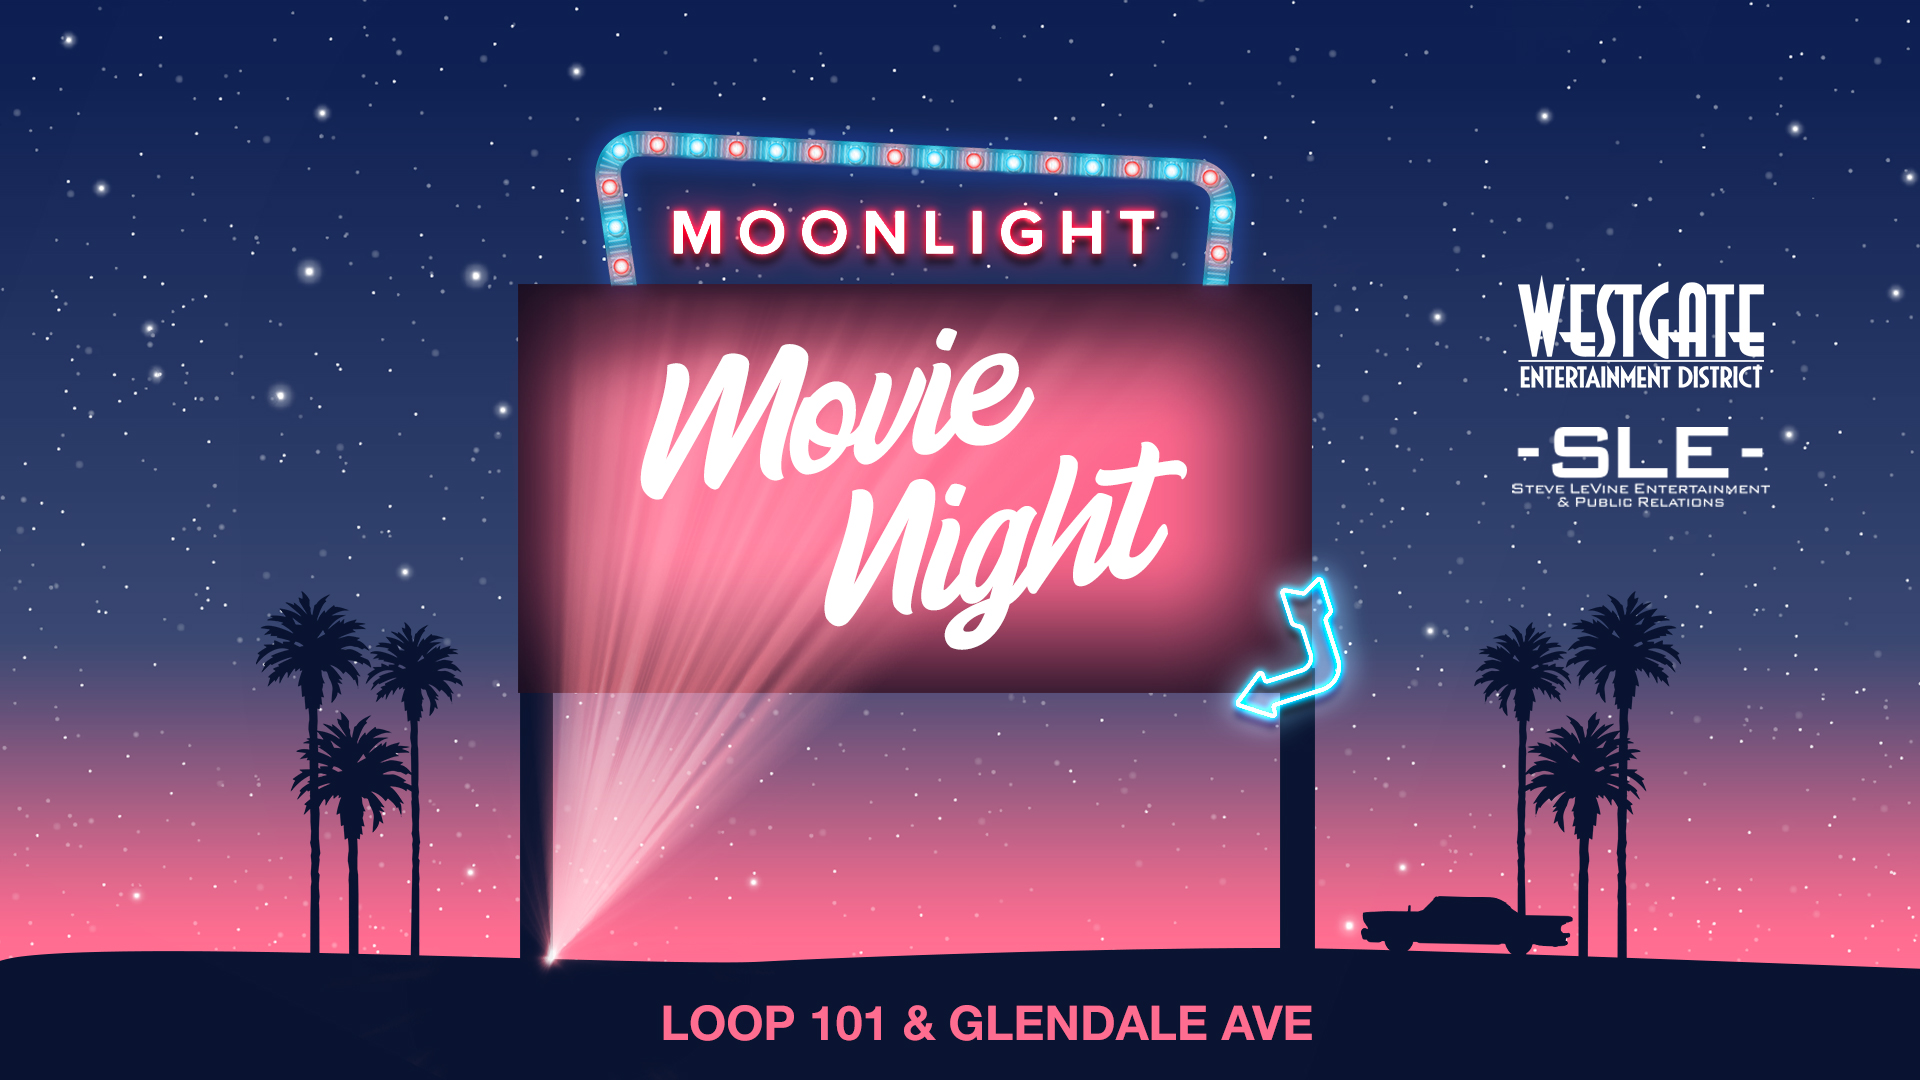 Find tickets from Moonlight Movie Night at Westgate